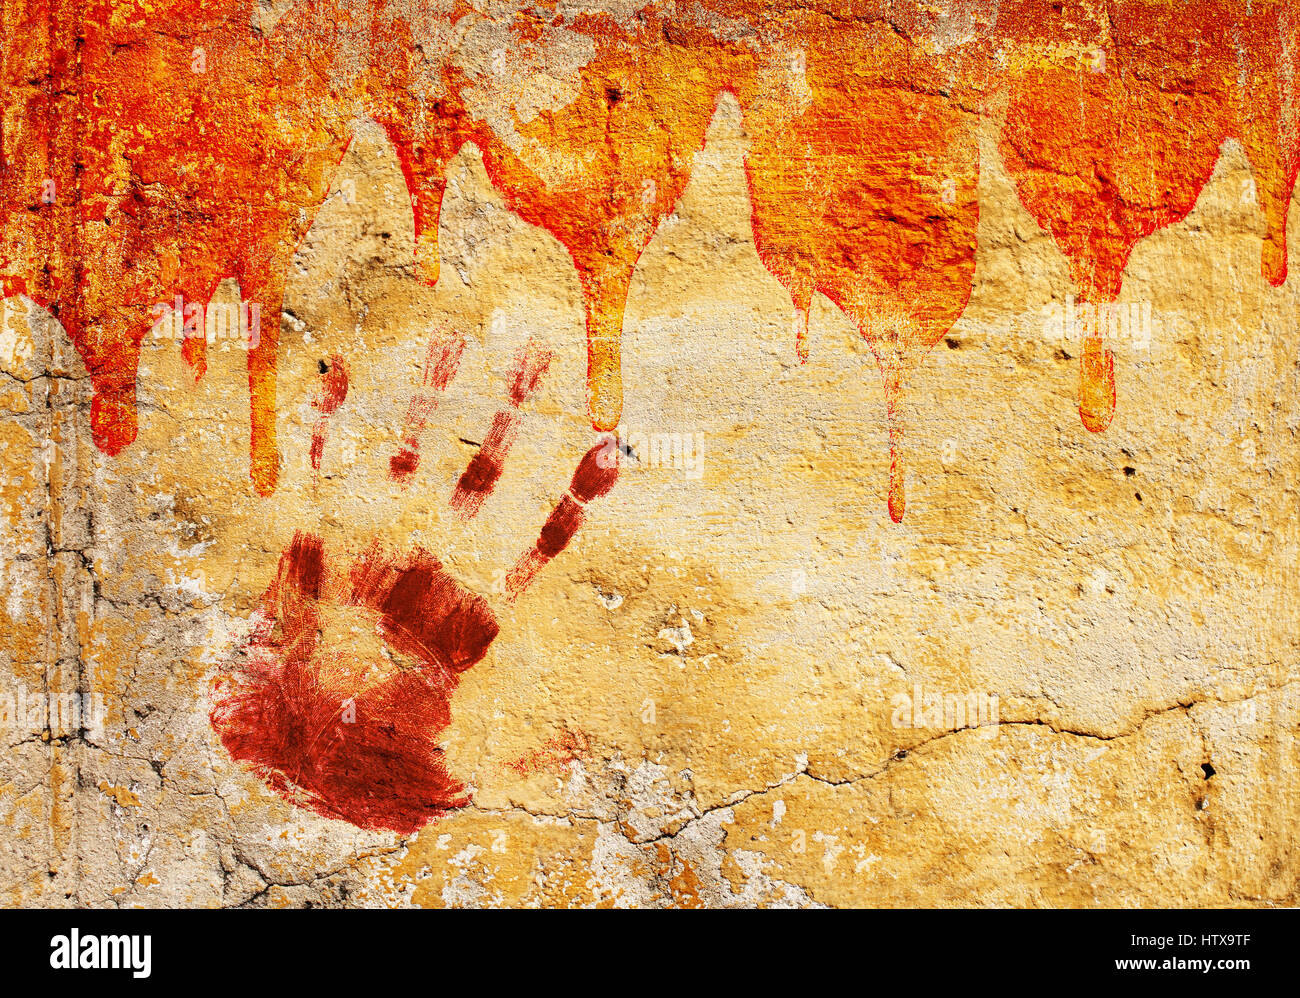 Blood Stained Fingerprint Stock Photos & Blood Stained Fingerprint ...